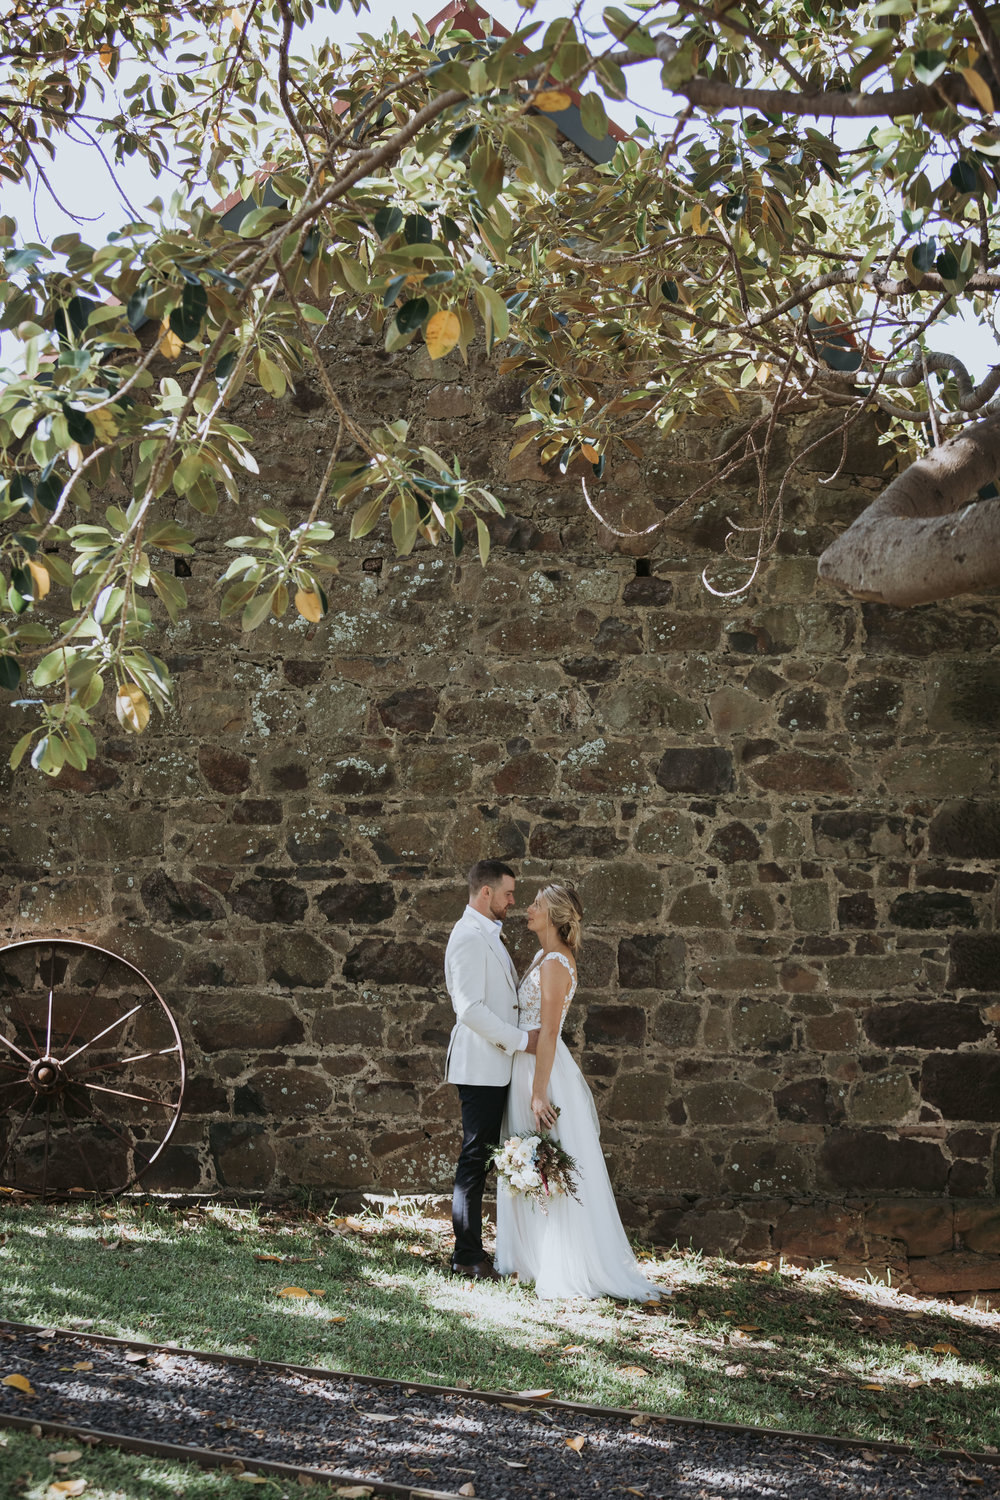 Bridal photo of groom and bride. Natural, relaxed wedding photography Kiama